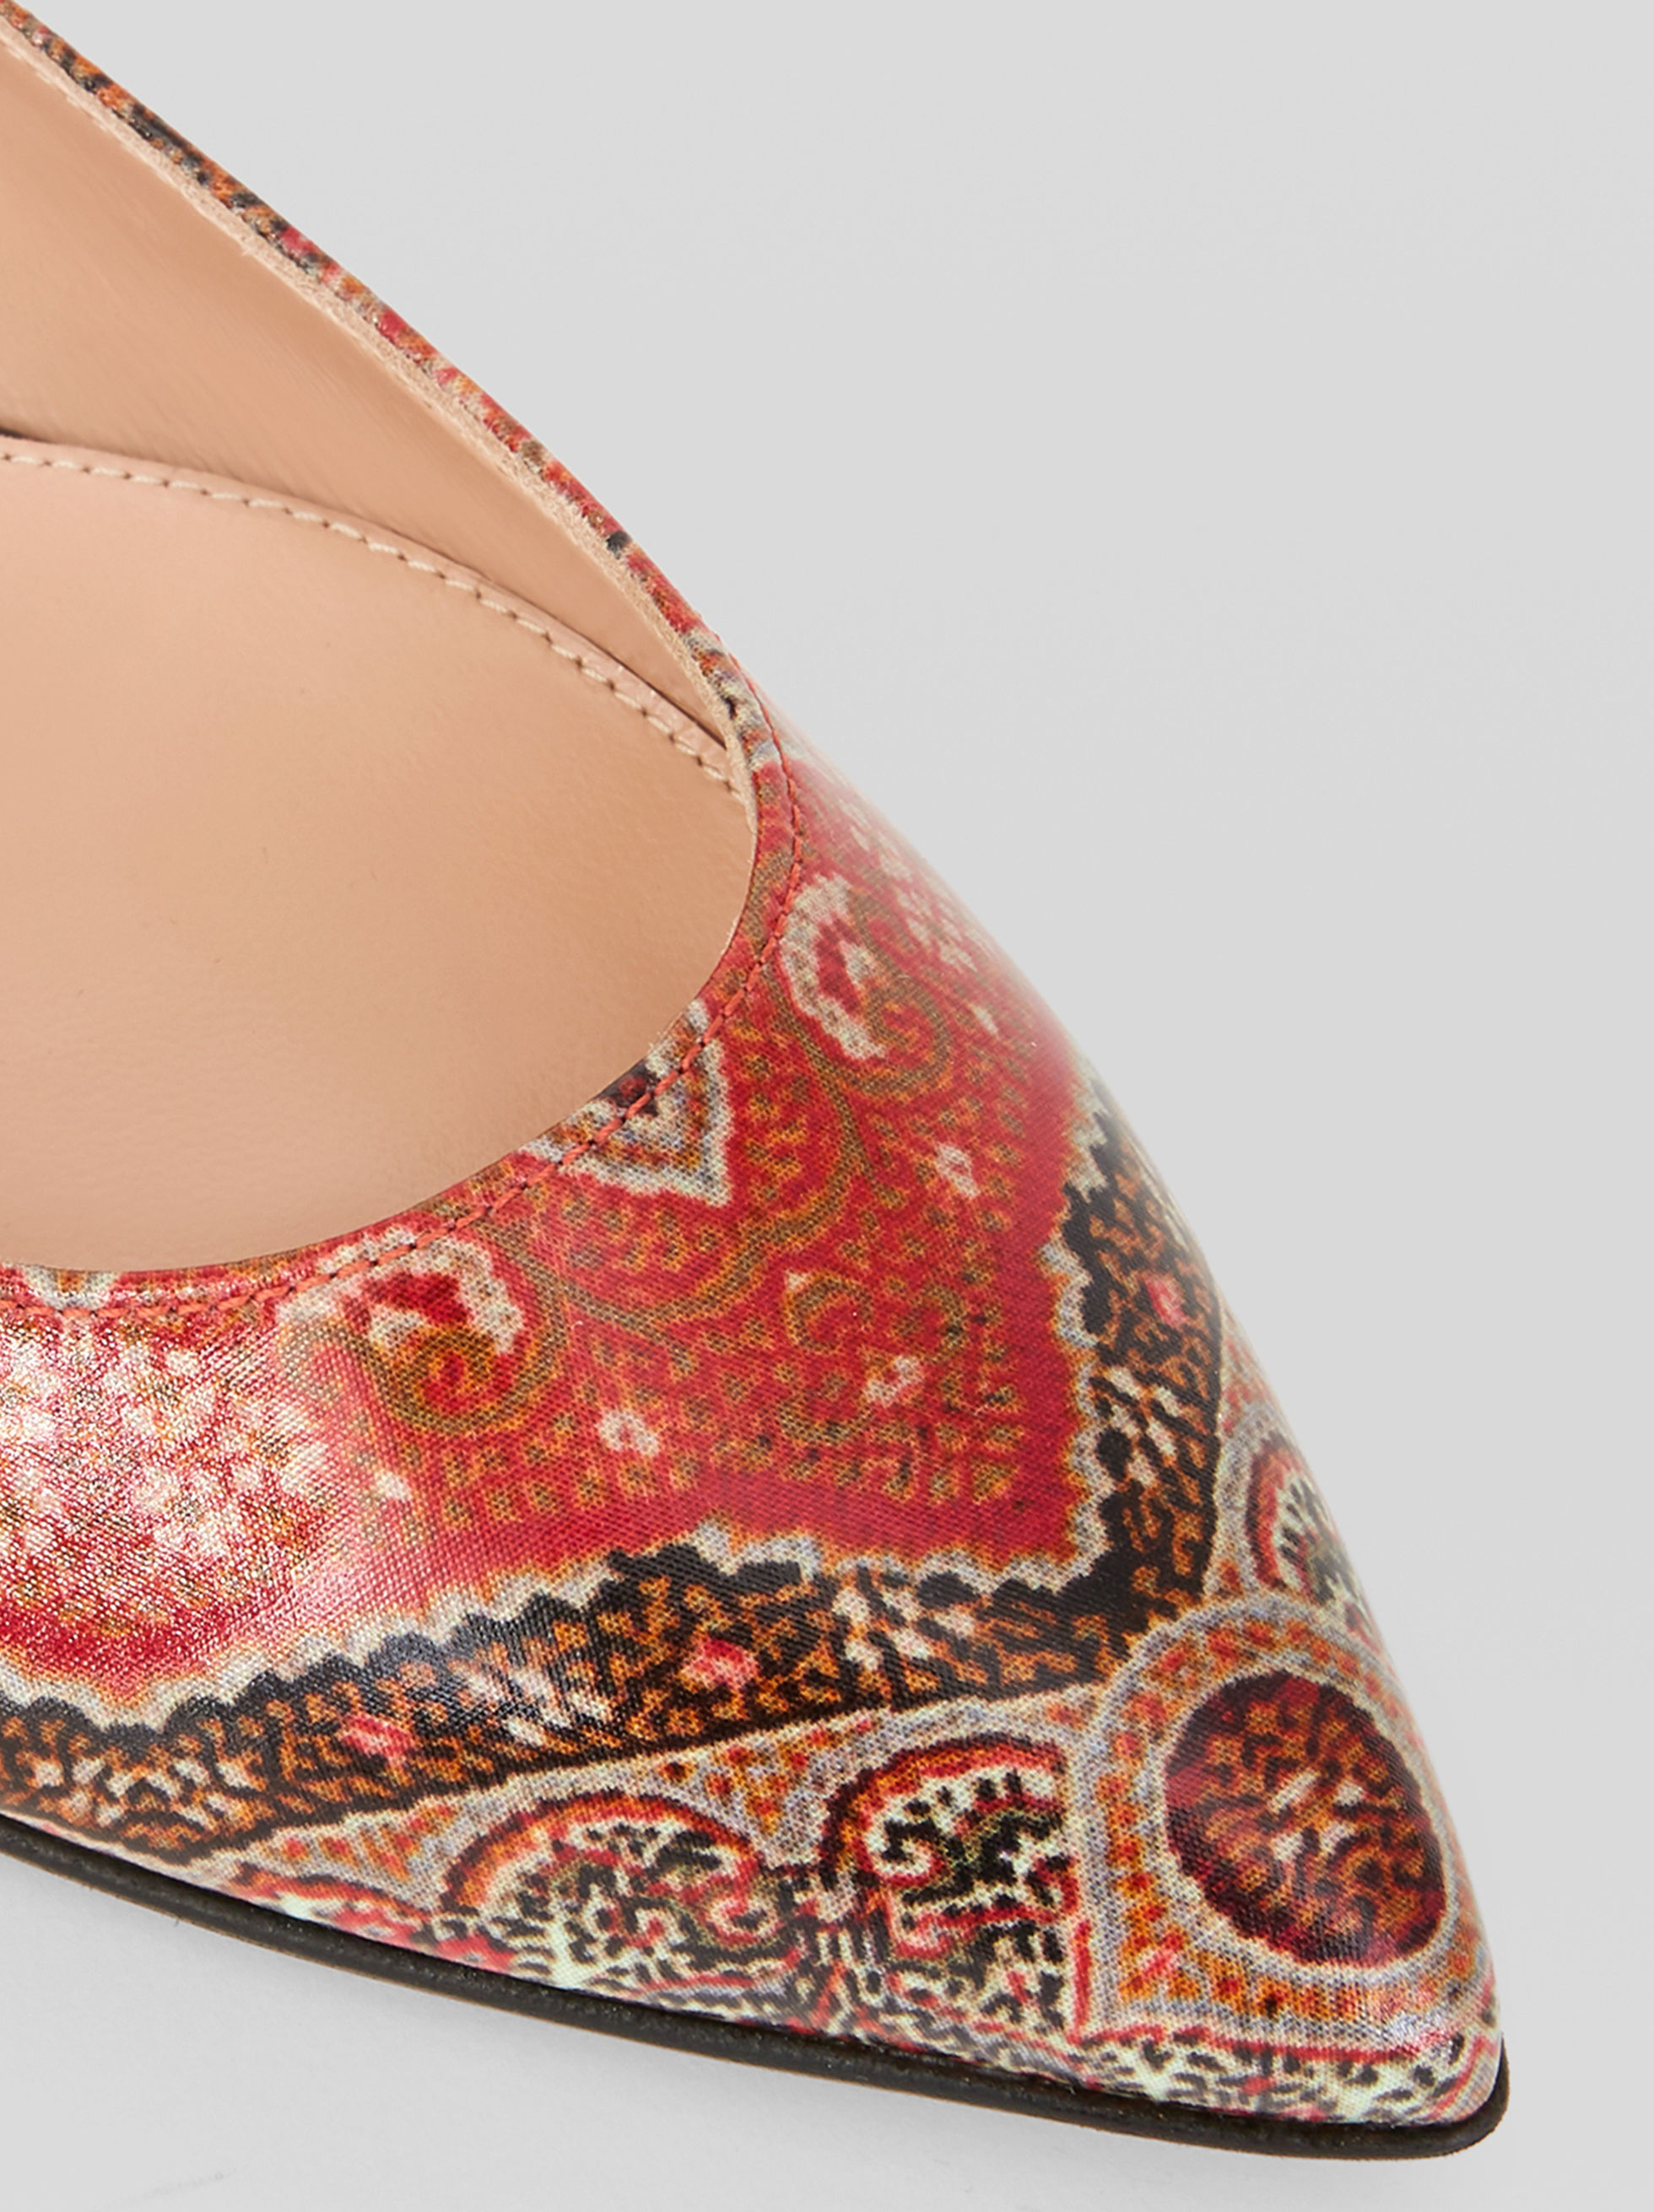 GIANVITO ROSSI BALLERINAS FOR ETRO